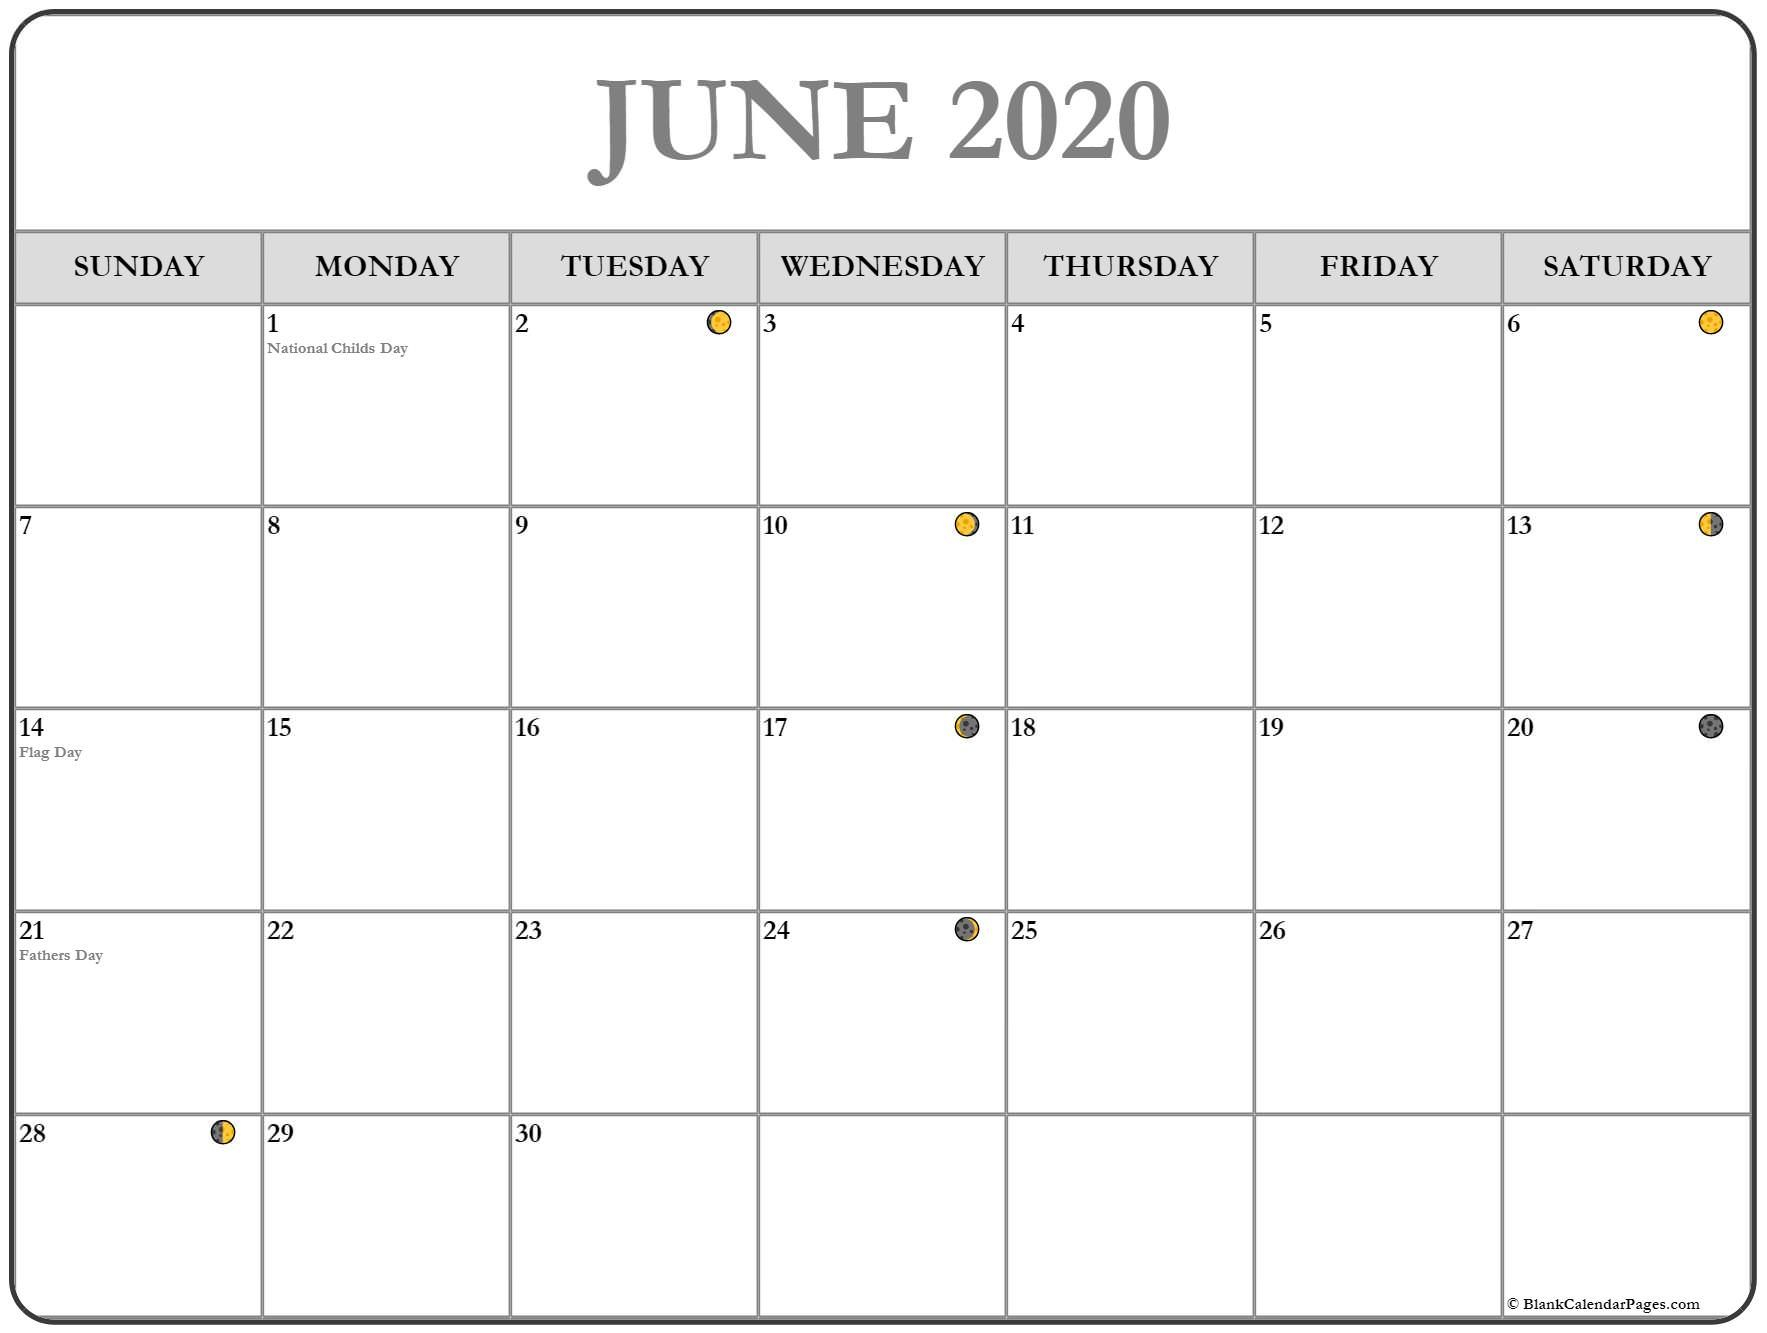 June 2020 Moon Phases Calendar | Monthly Calendar Template